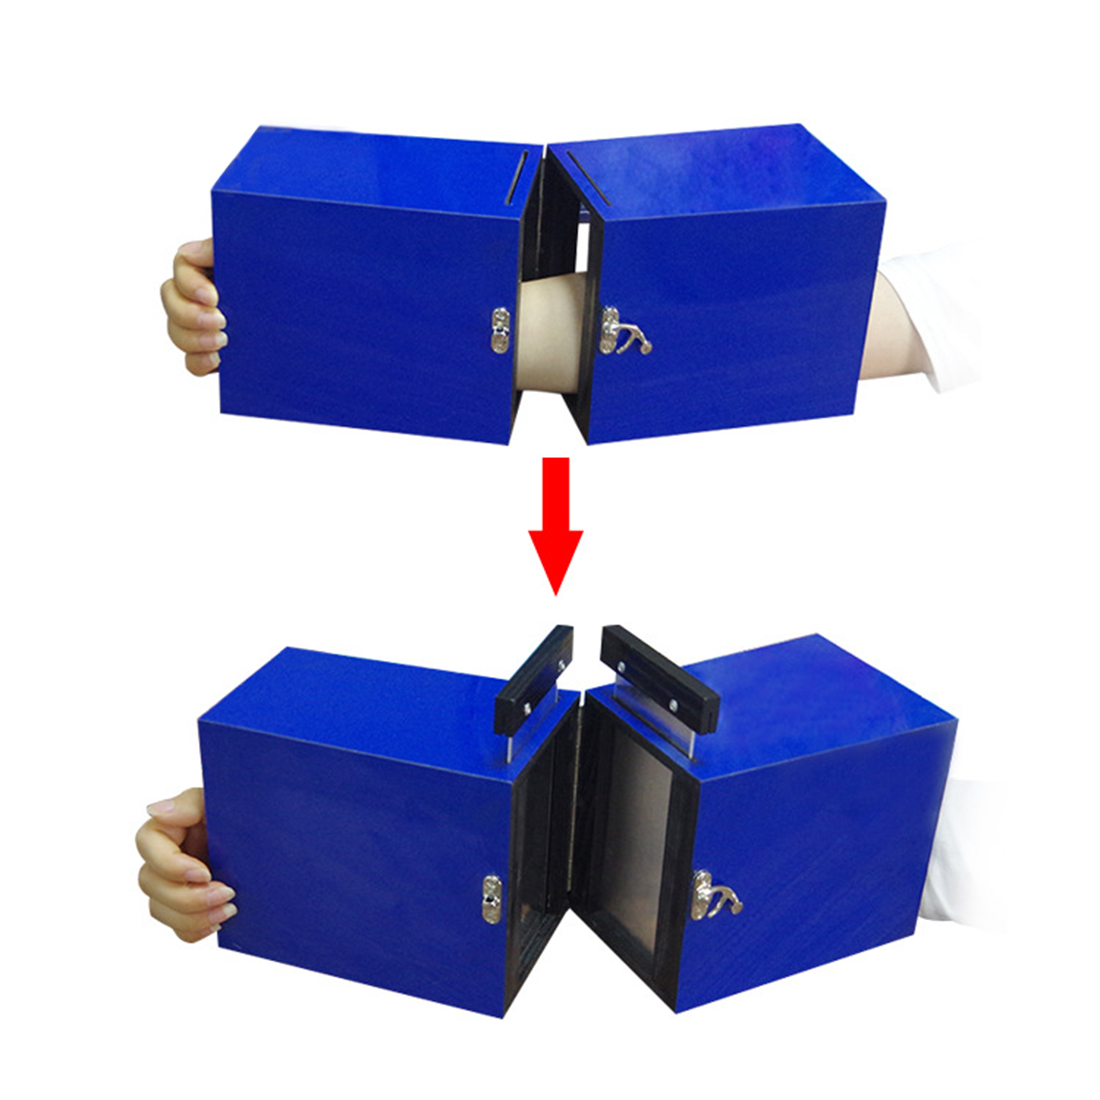 Drop Shipping Dis Armed One-Person Portable Illusion Magic Tricks Magician Stage Gimmick Prop 2020 New Arrival